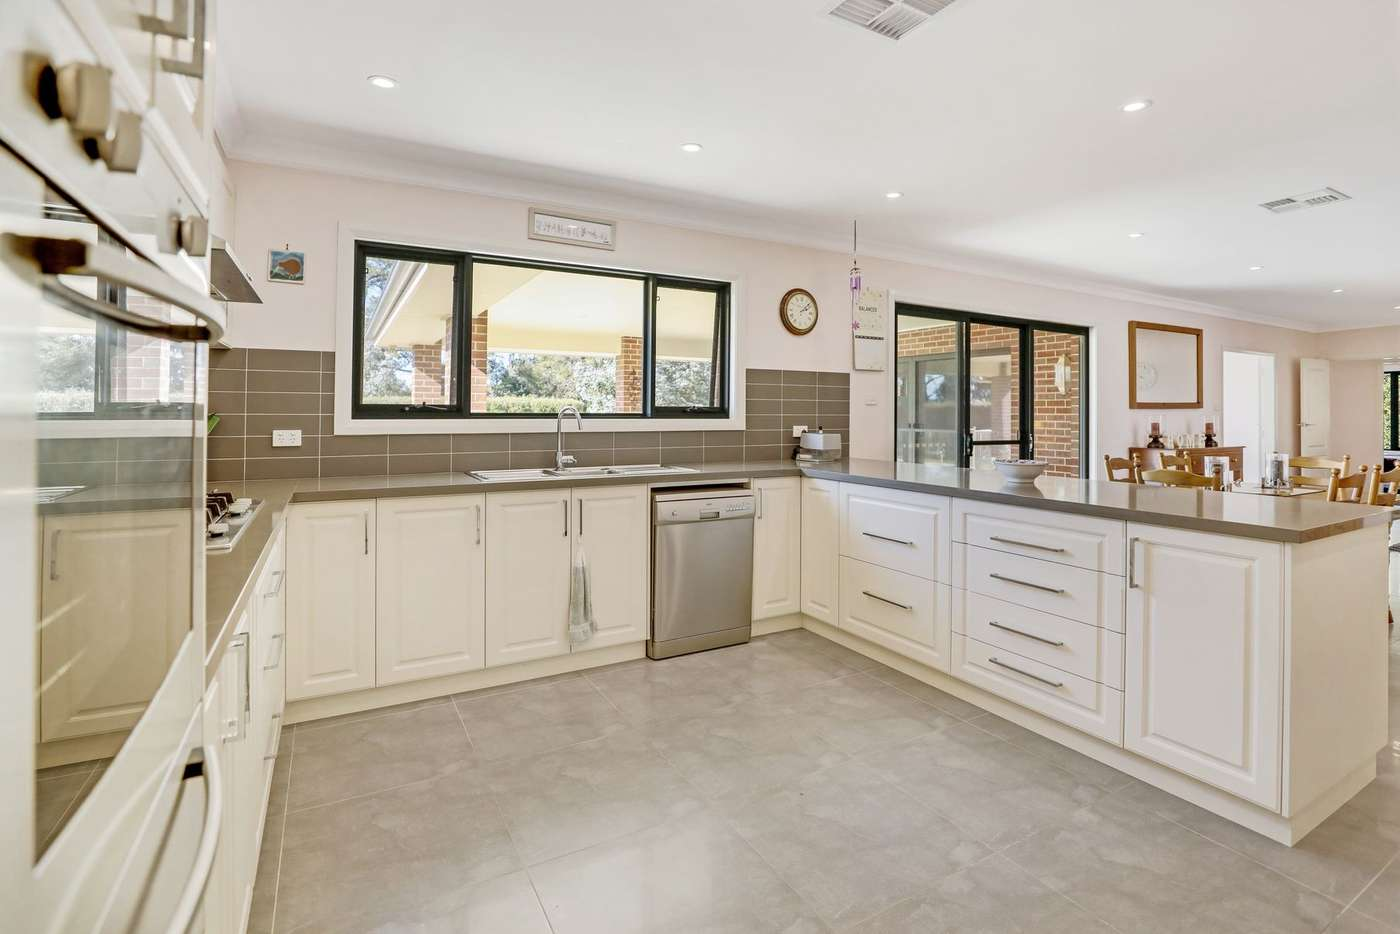 Sixth view of Homely house listing, 41 Ridgeview Close, White Rock NSW 2795